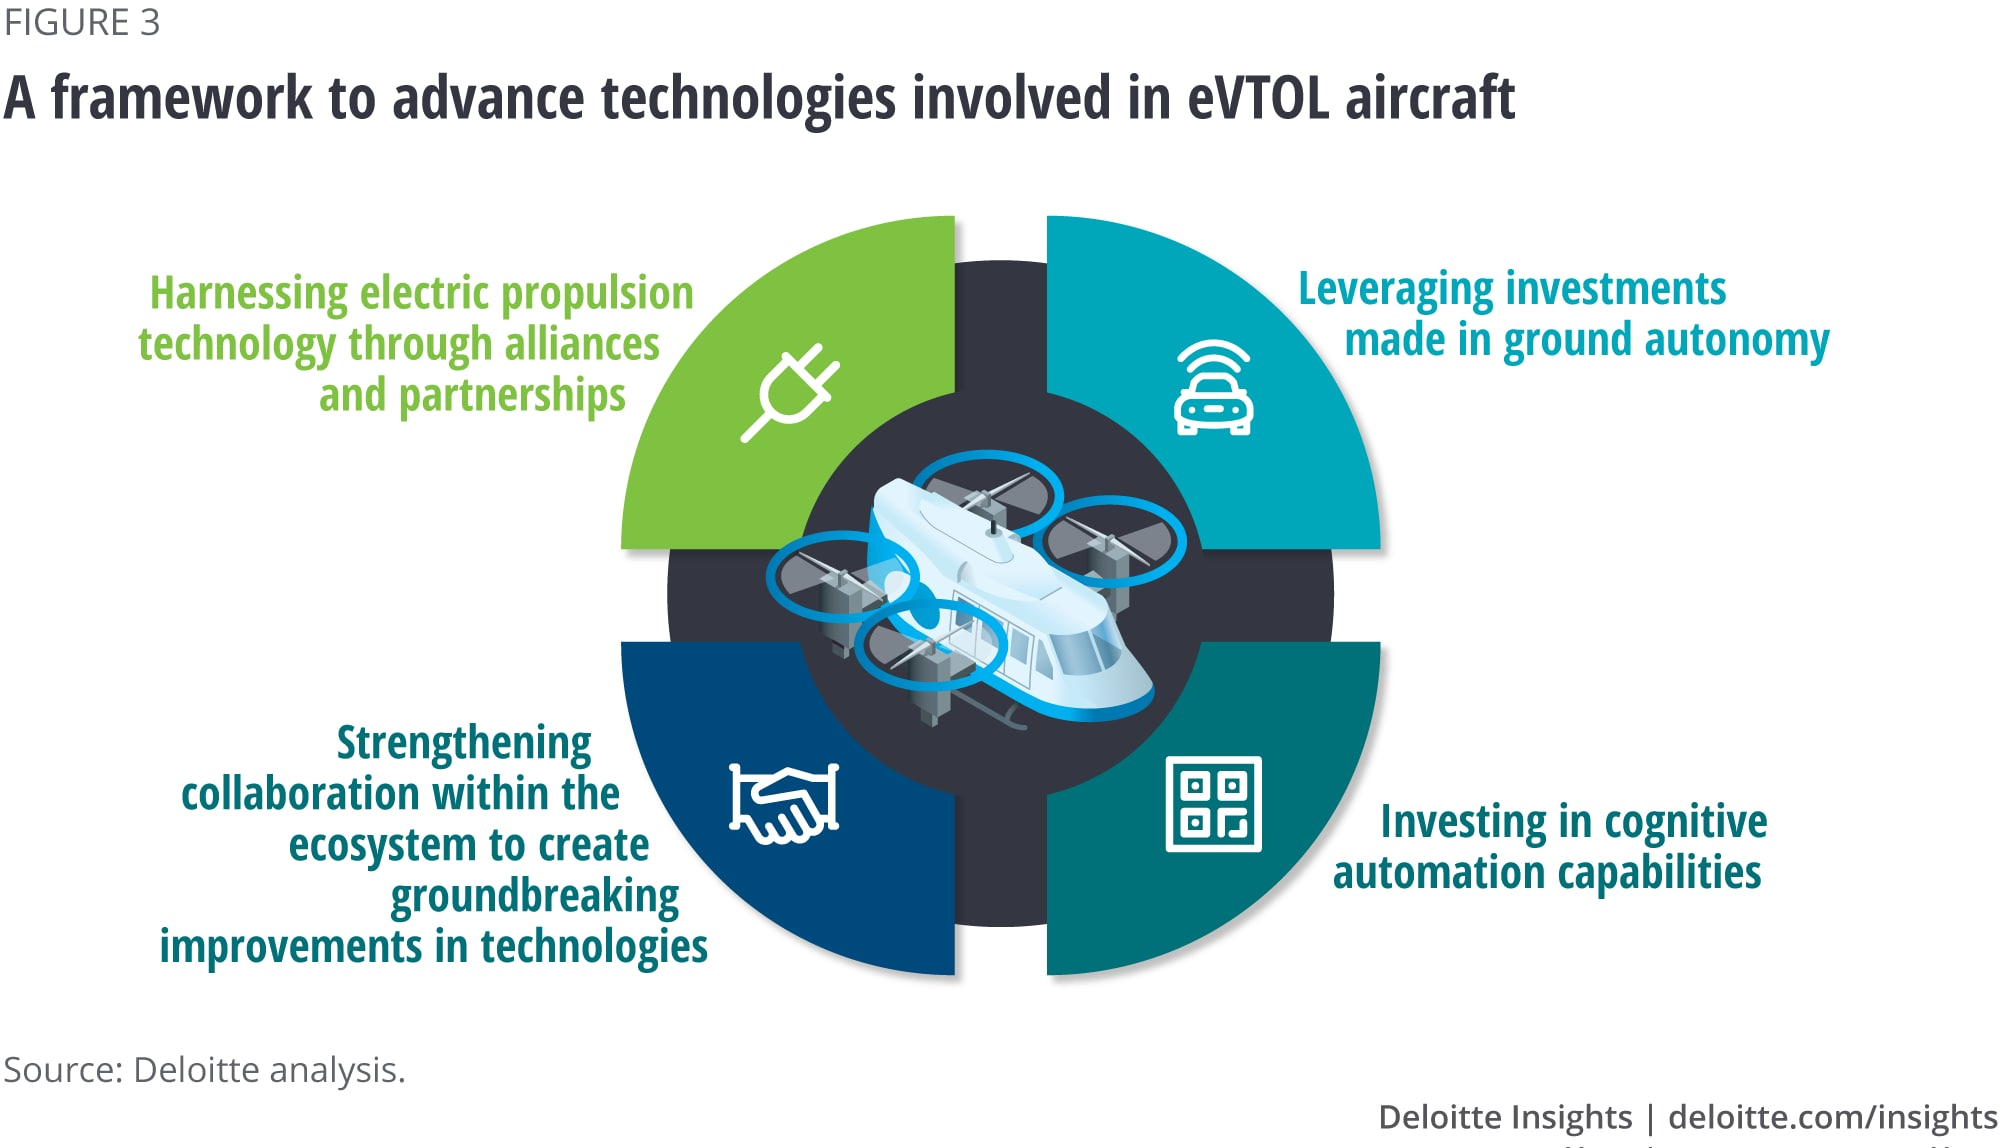 A framework to advance technologies involved in eVTOL aircraft